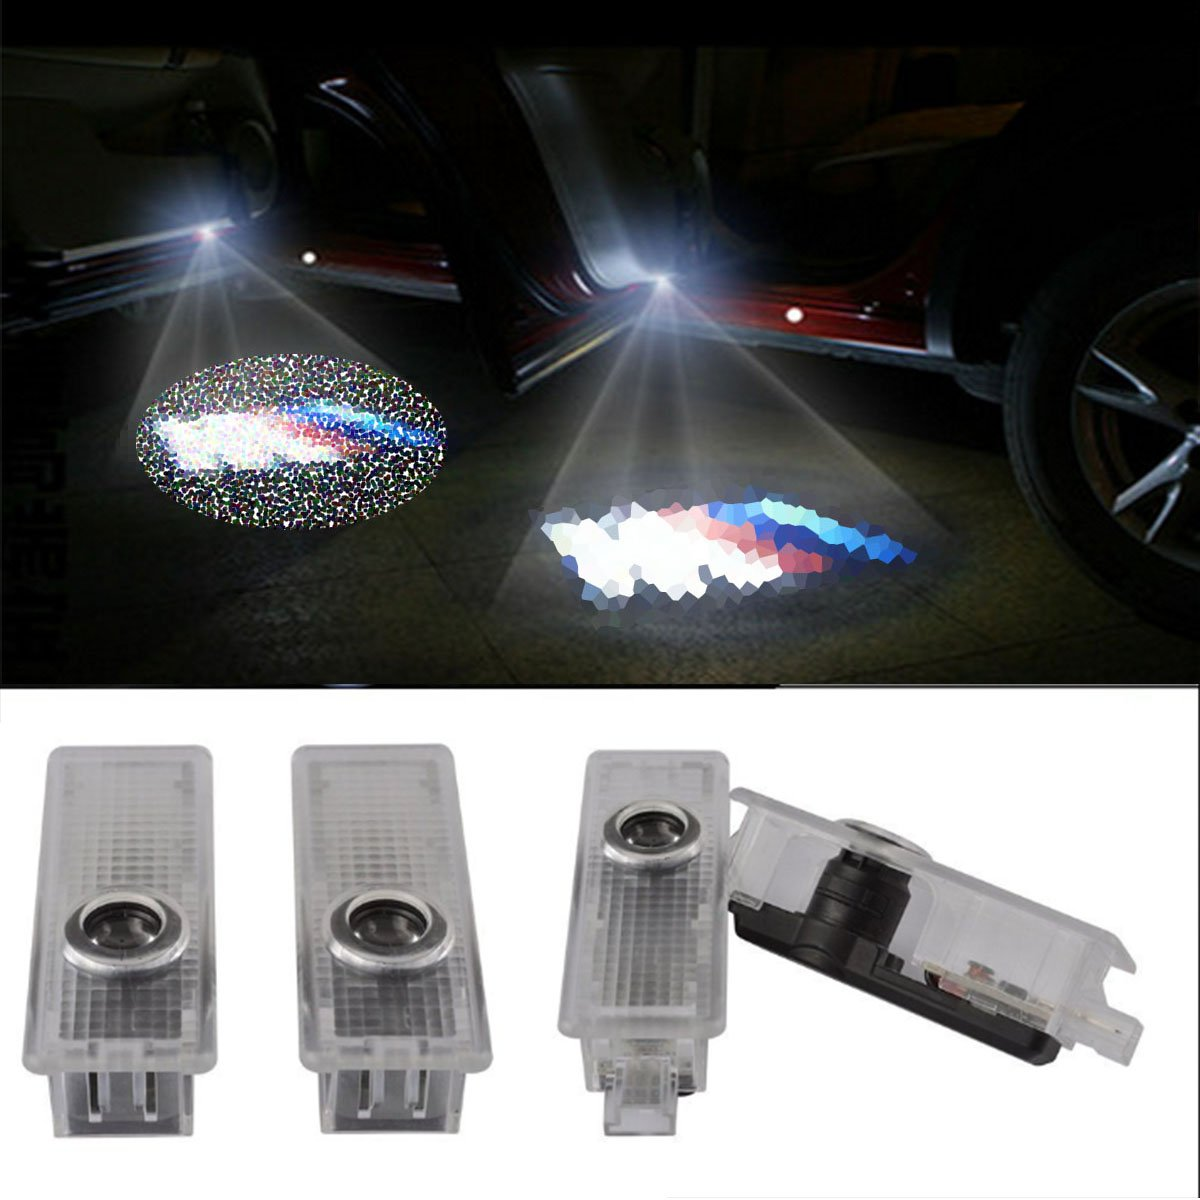 CNAutoLicht 4X M logo ///M logo Cree LED Door Step Courtesy Light Welcome Light For BMW 7-Series E65 E66 E67 F01 F02 F03 4-Series F32 F33 F83 X1 X3 X4 X6 Z4 GT-Series Laser Shadow Logo Projector Lamp